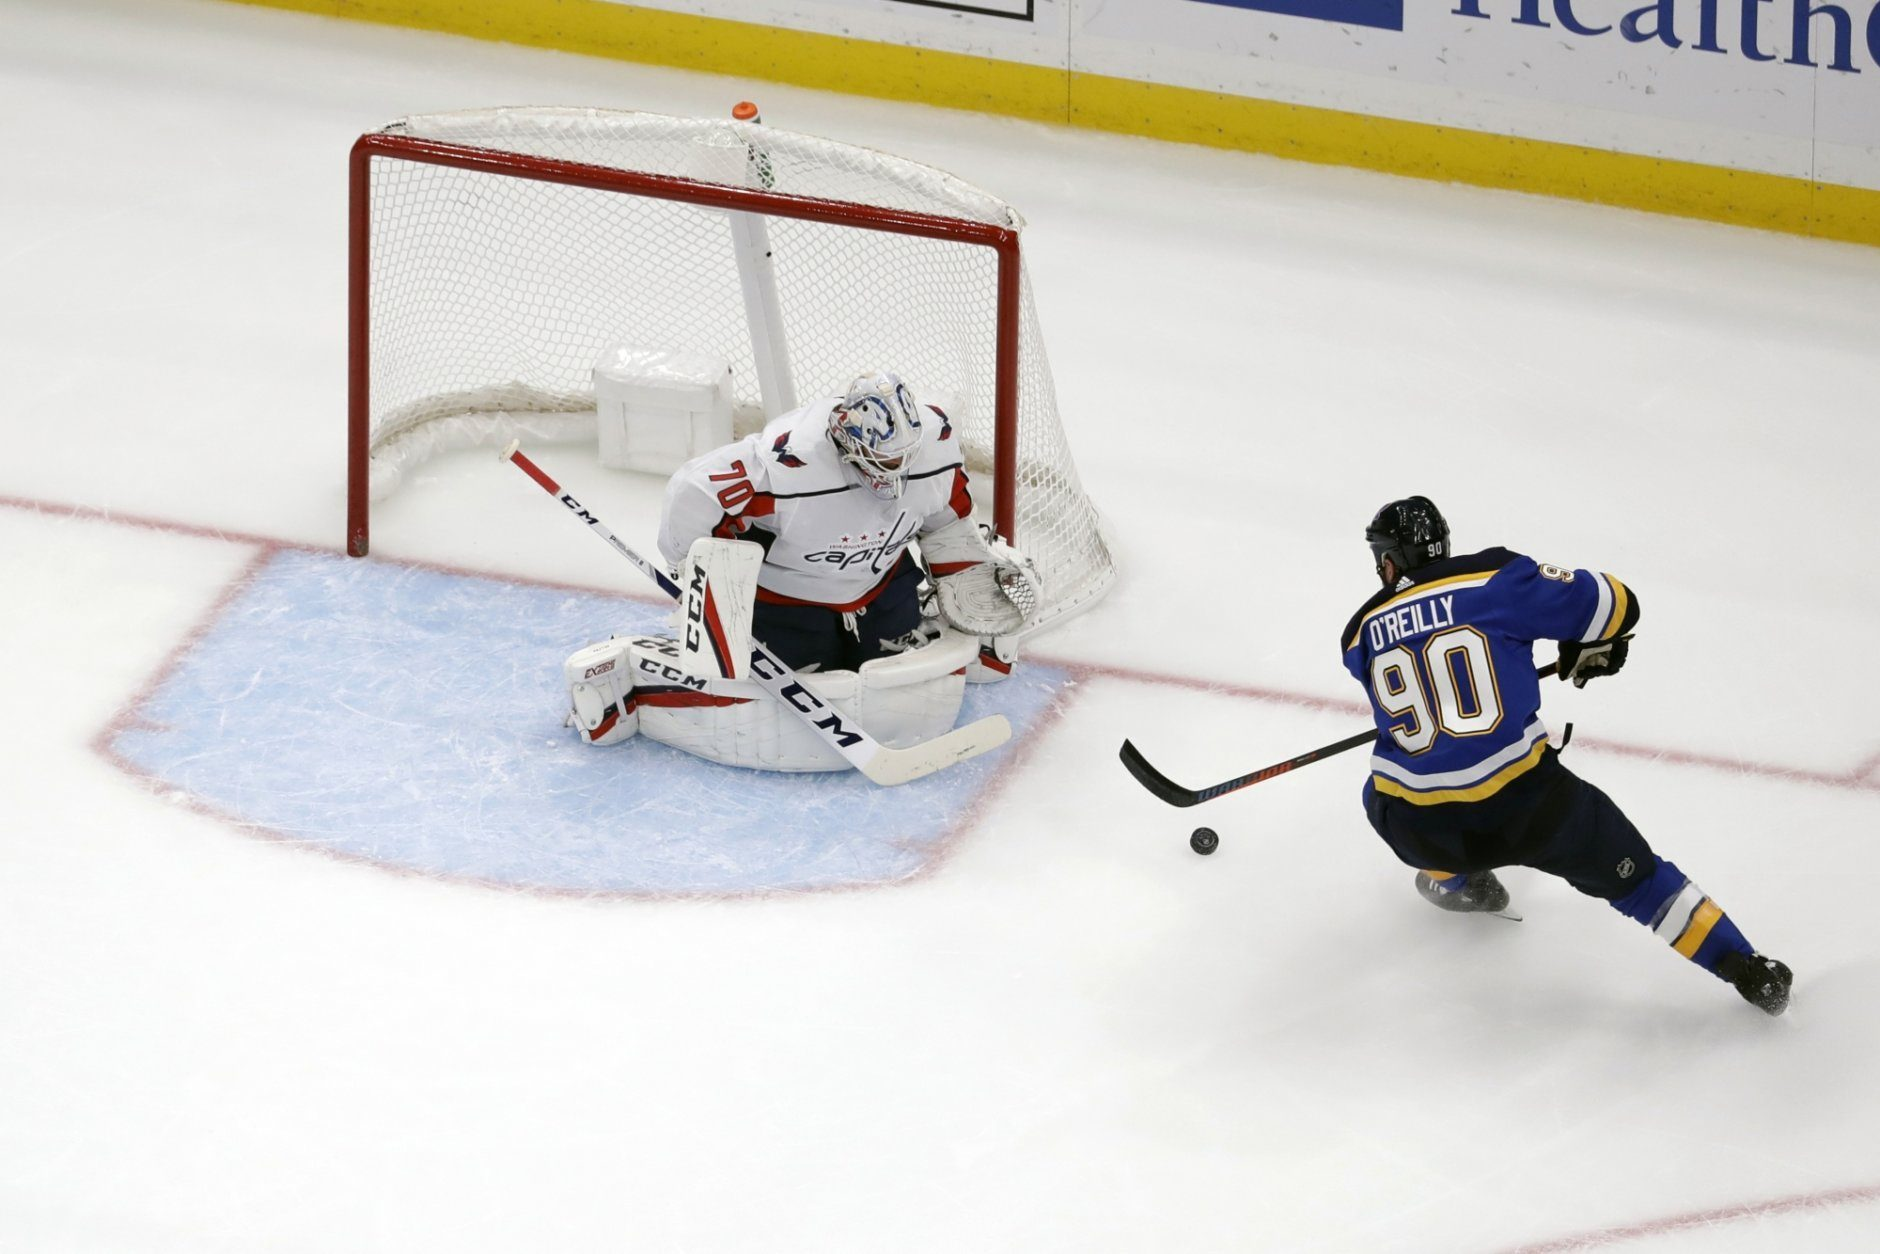 St. Louis Blues' Ryan O'Reilly (90) is unable to get a shot off as Washington Capitals goaltender Braden Holtby (70) defends during the second period of an NHL hockey game Wednesday, Oct. 2, 2019, in St. Louis. (AP Photo/Jeff Roberson)